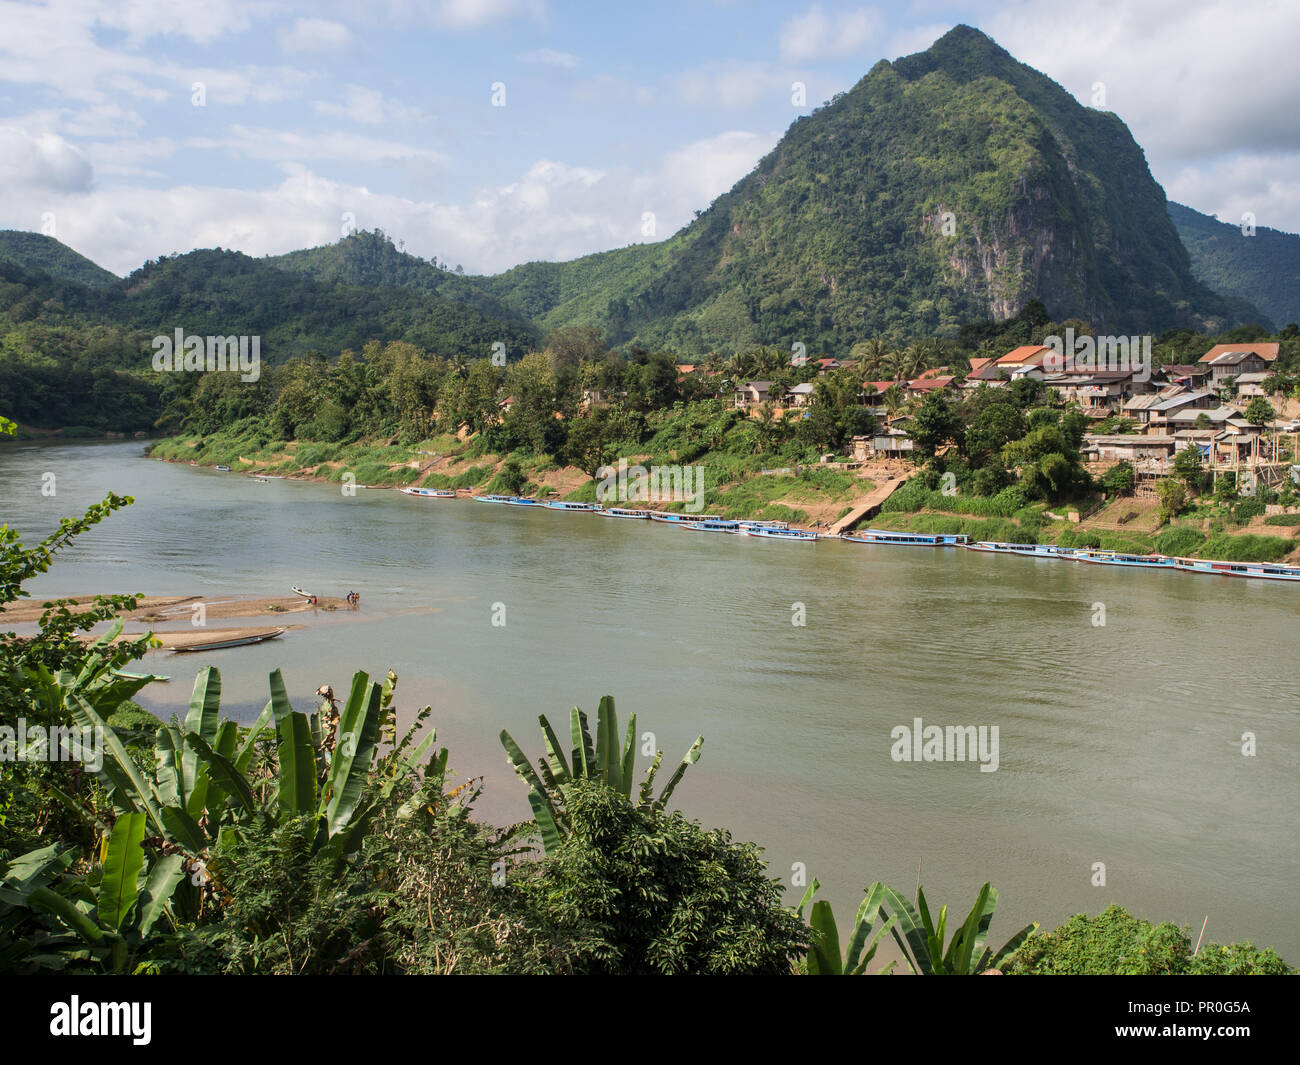 Village, river, and mountains, Nong Khiaw, Laos, Indochina, Southeast Asia, Asia - Stock Image